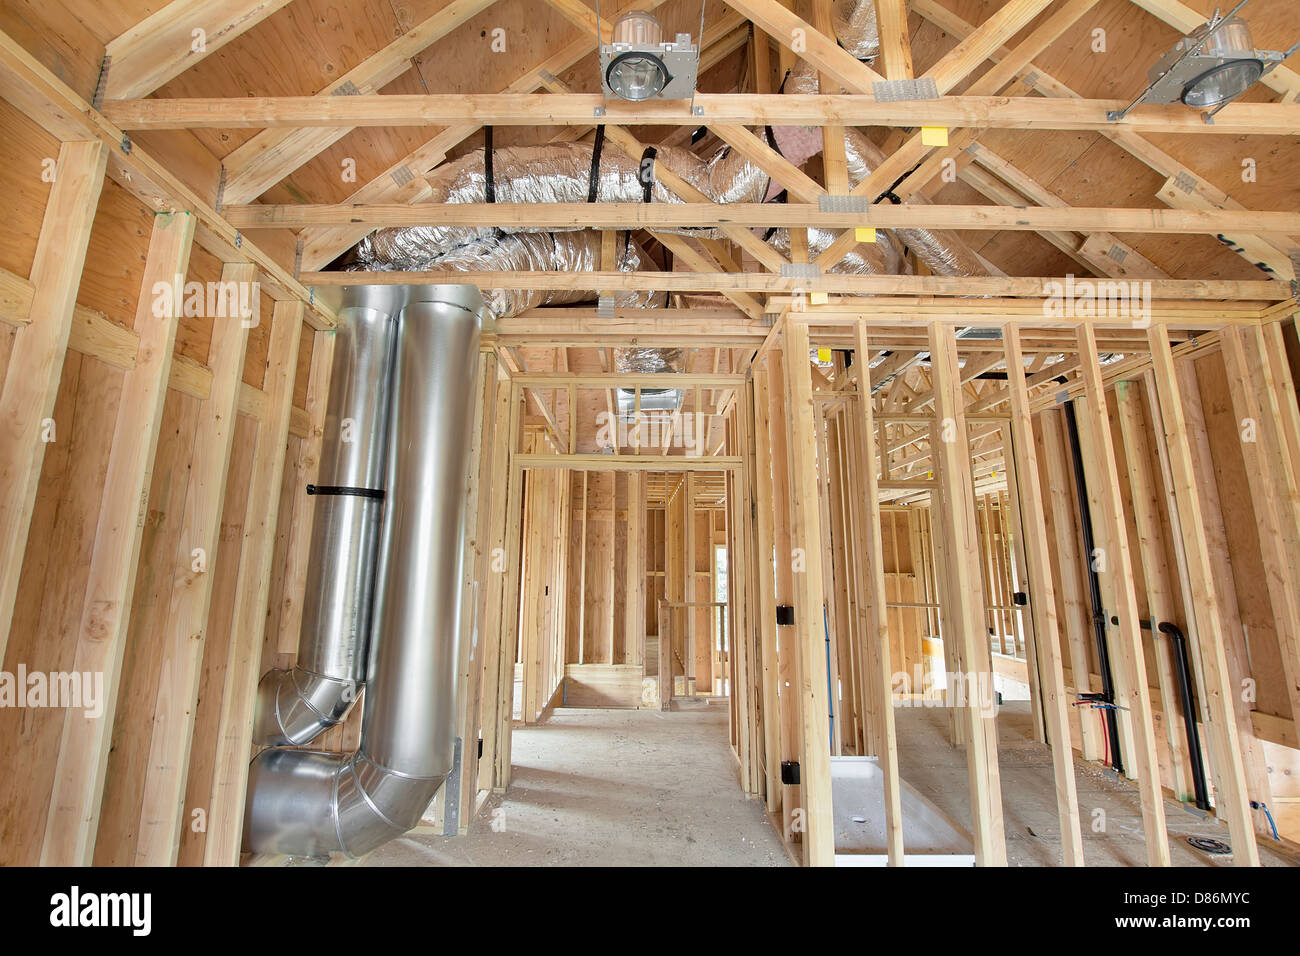 New Home Construction With Wood Studs Framing Heating Cooling System Air Duct Works Plumbing And Electrical Ceiling Light Cans